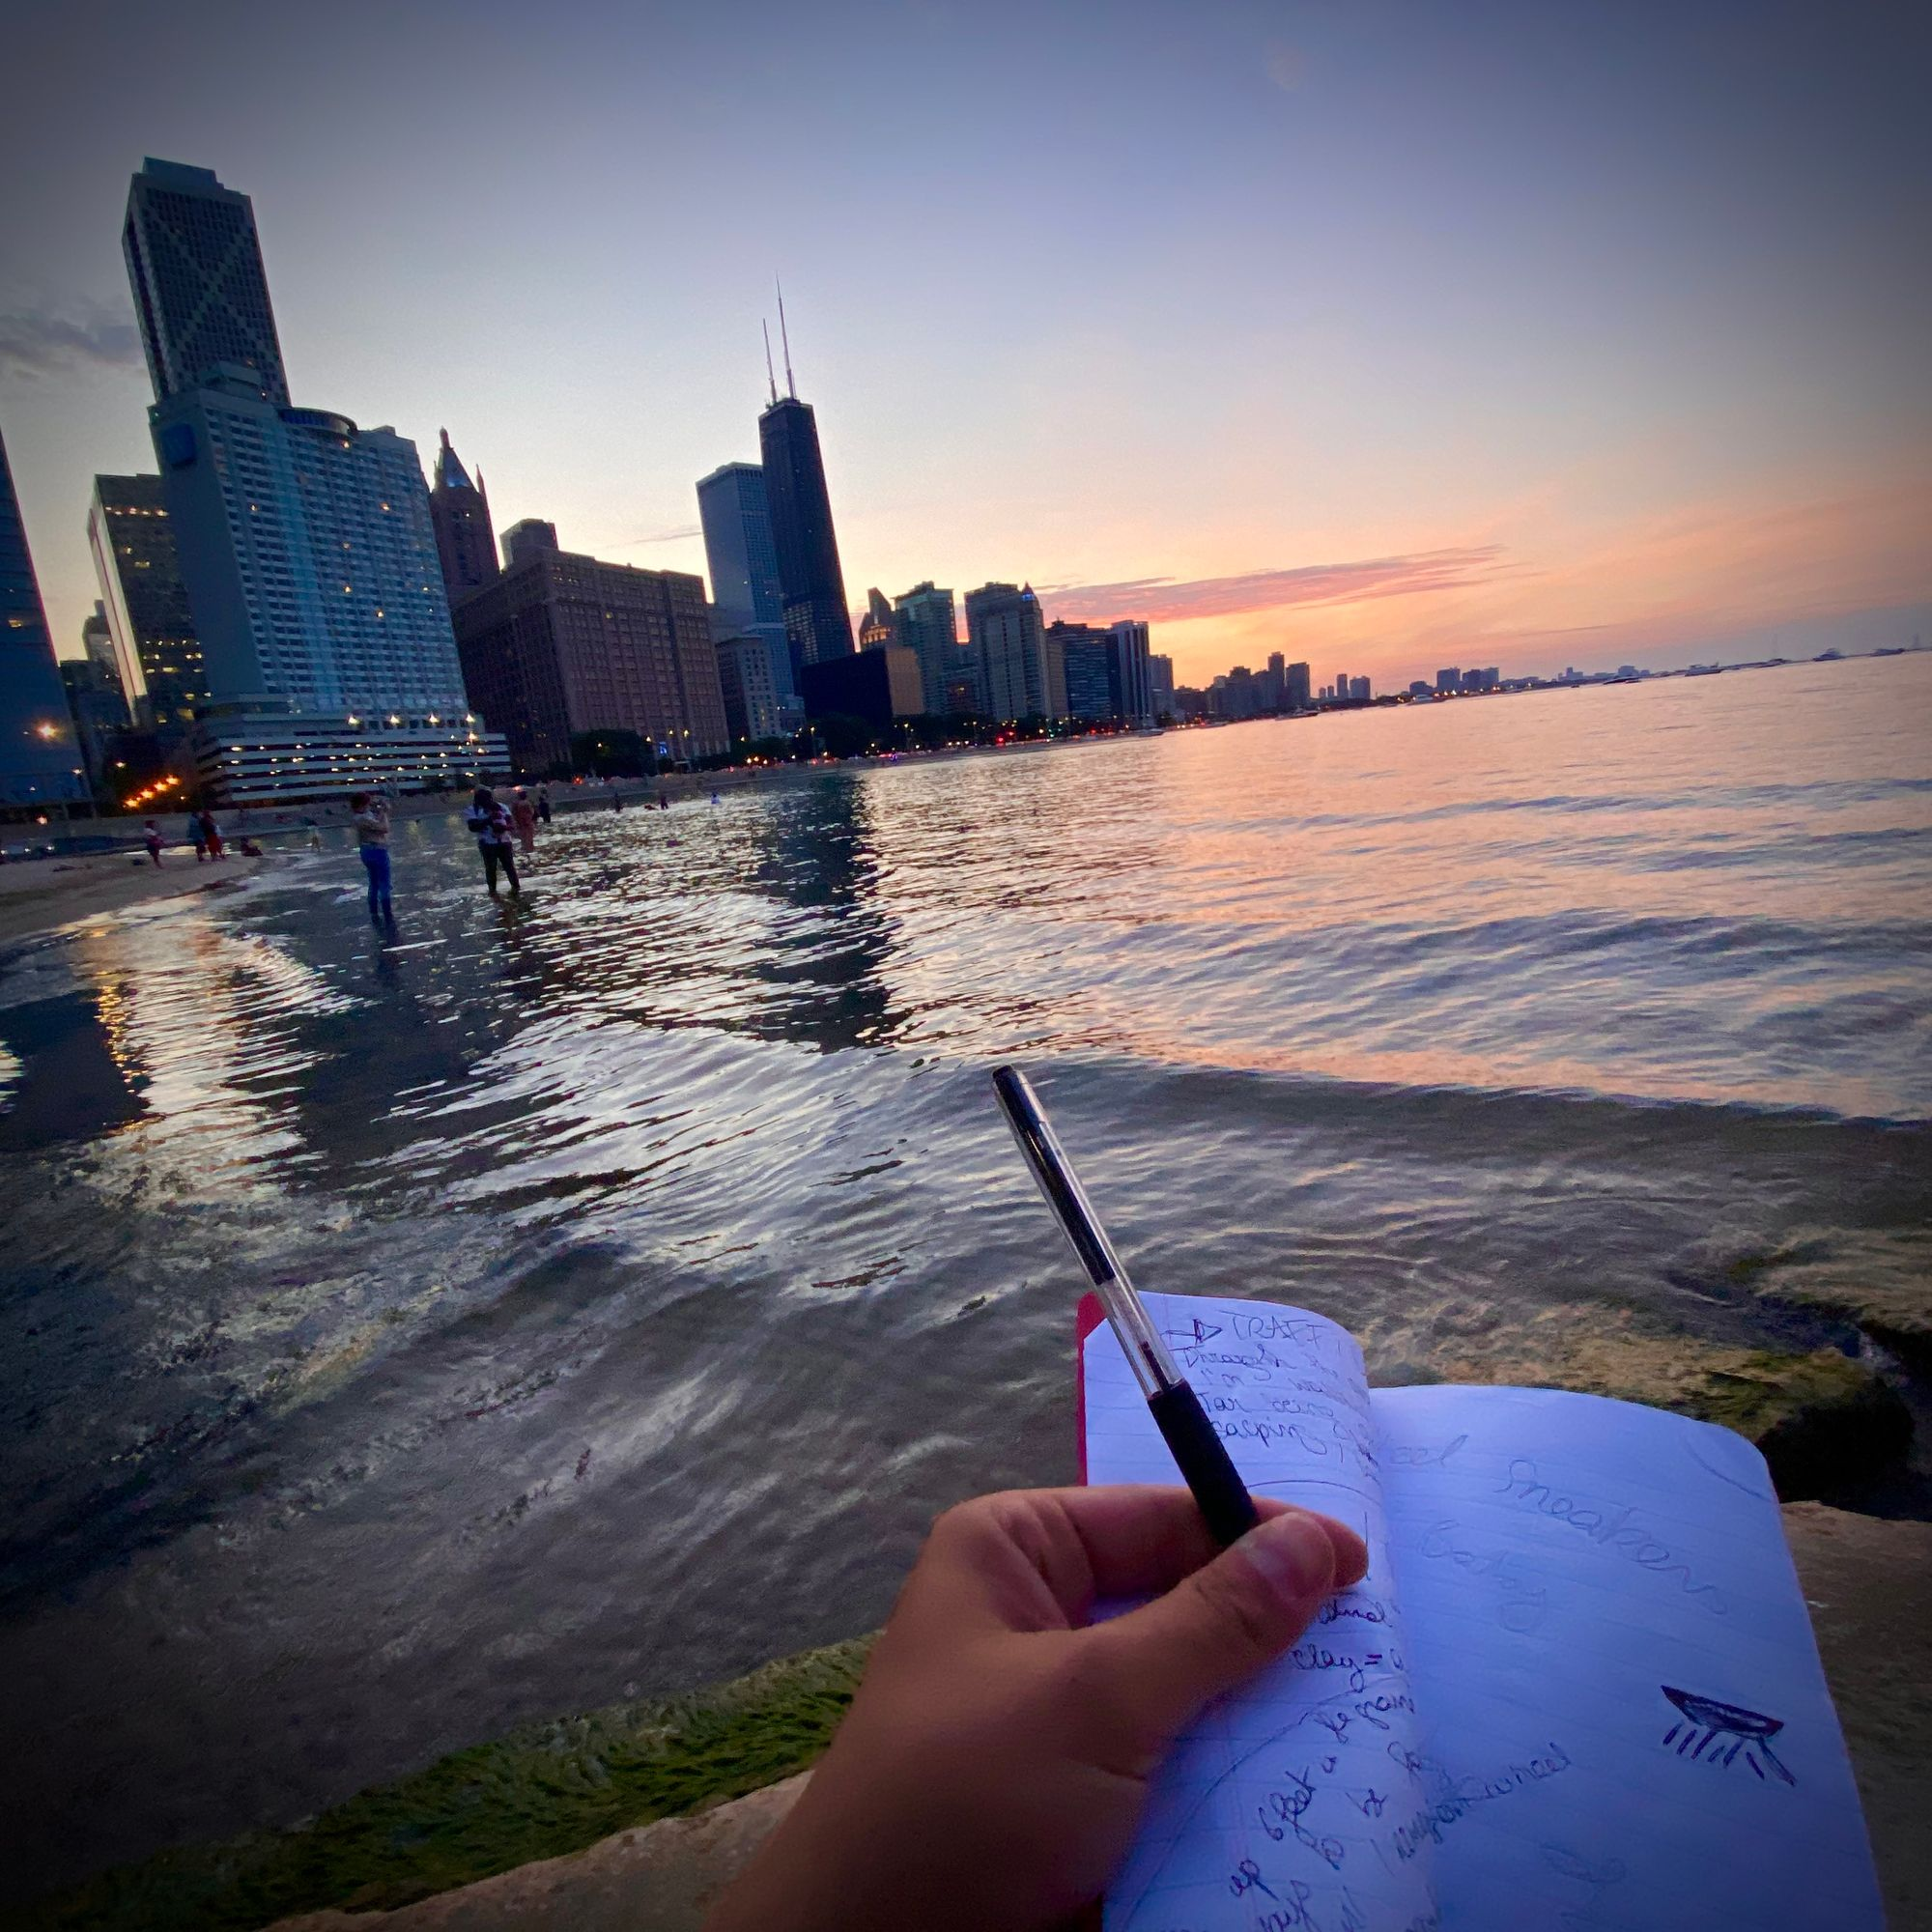 Ghalia's notebook by a Chicago lake.